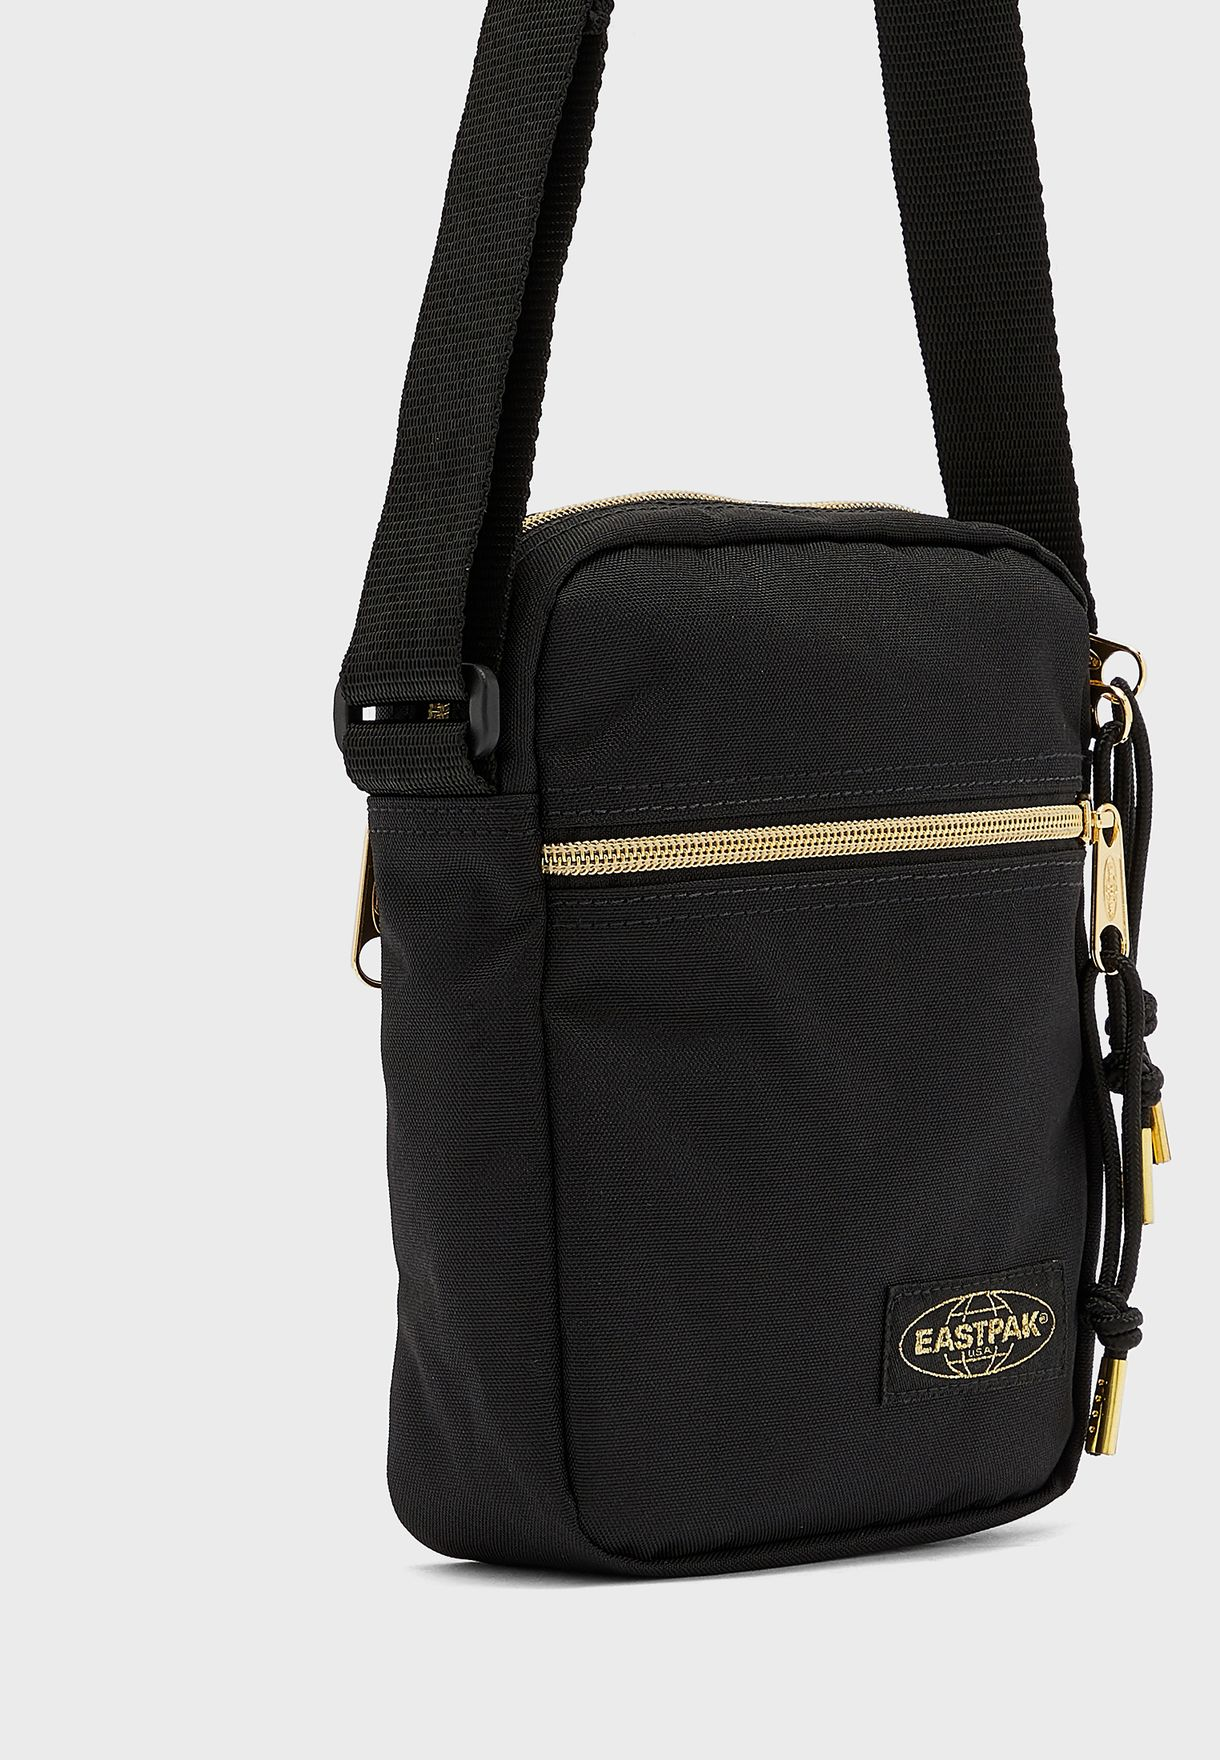 The One Messenger Bag